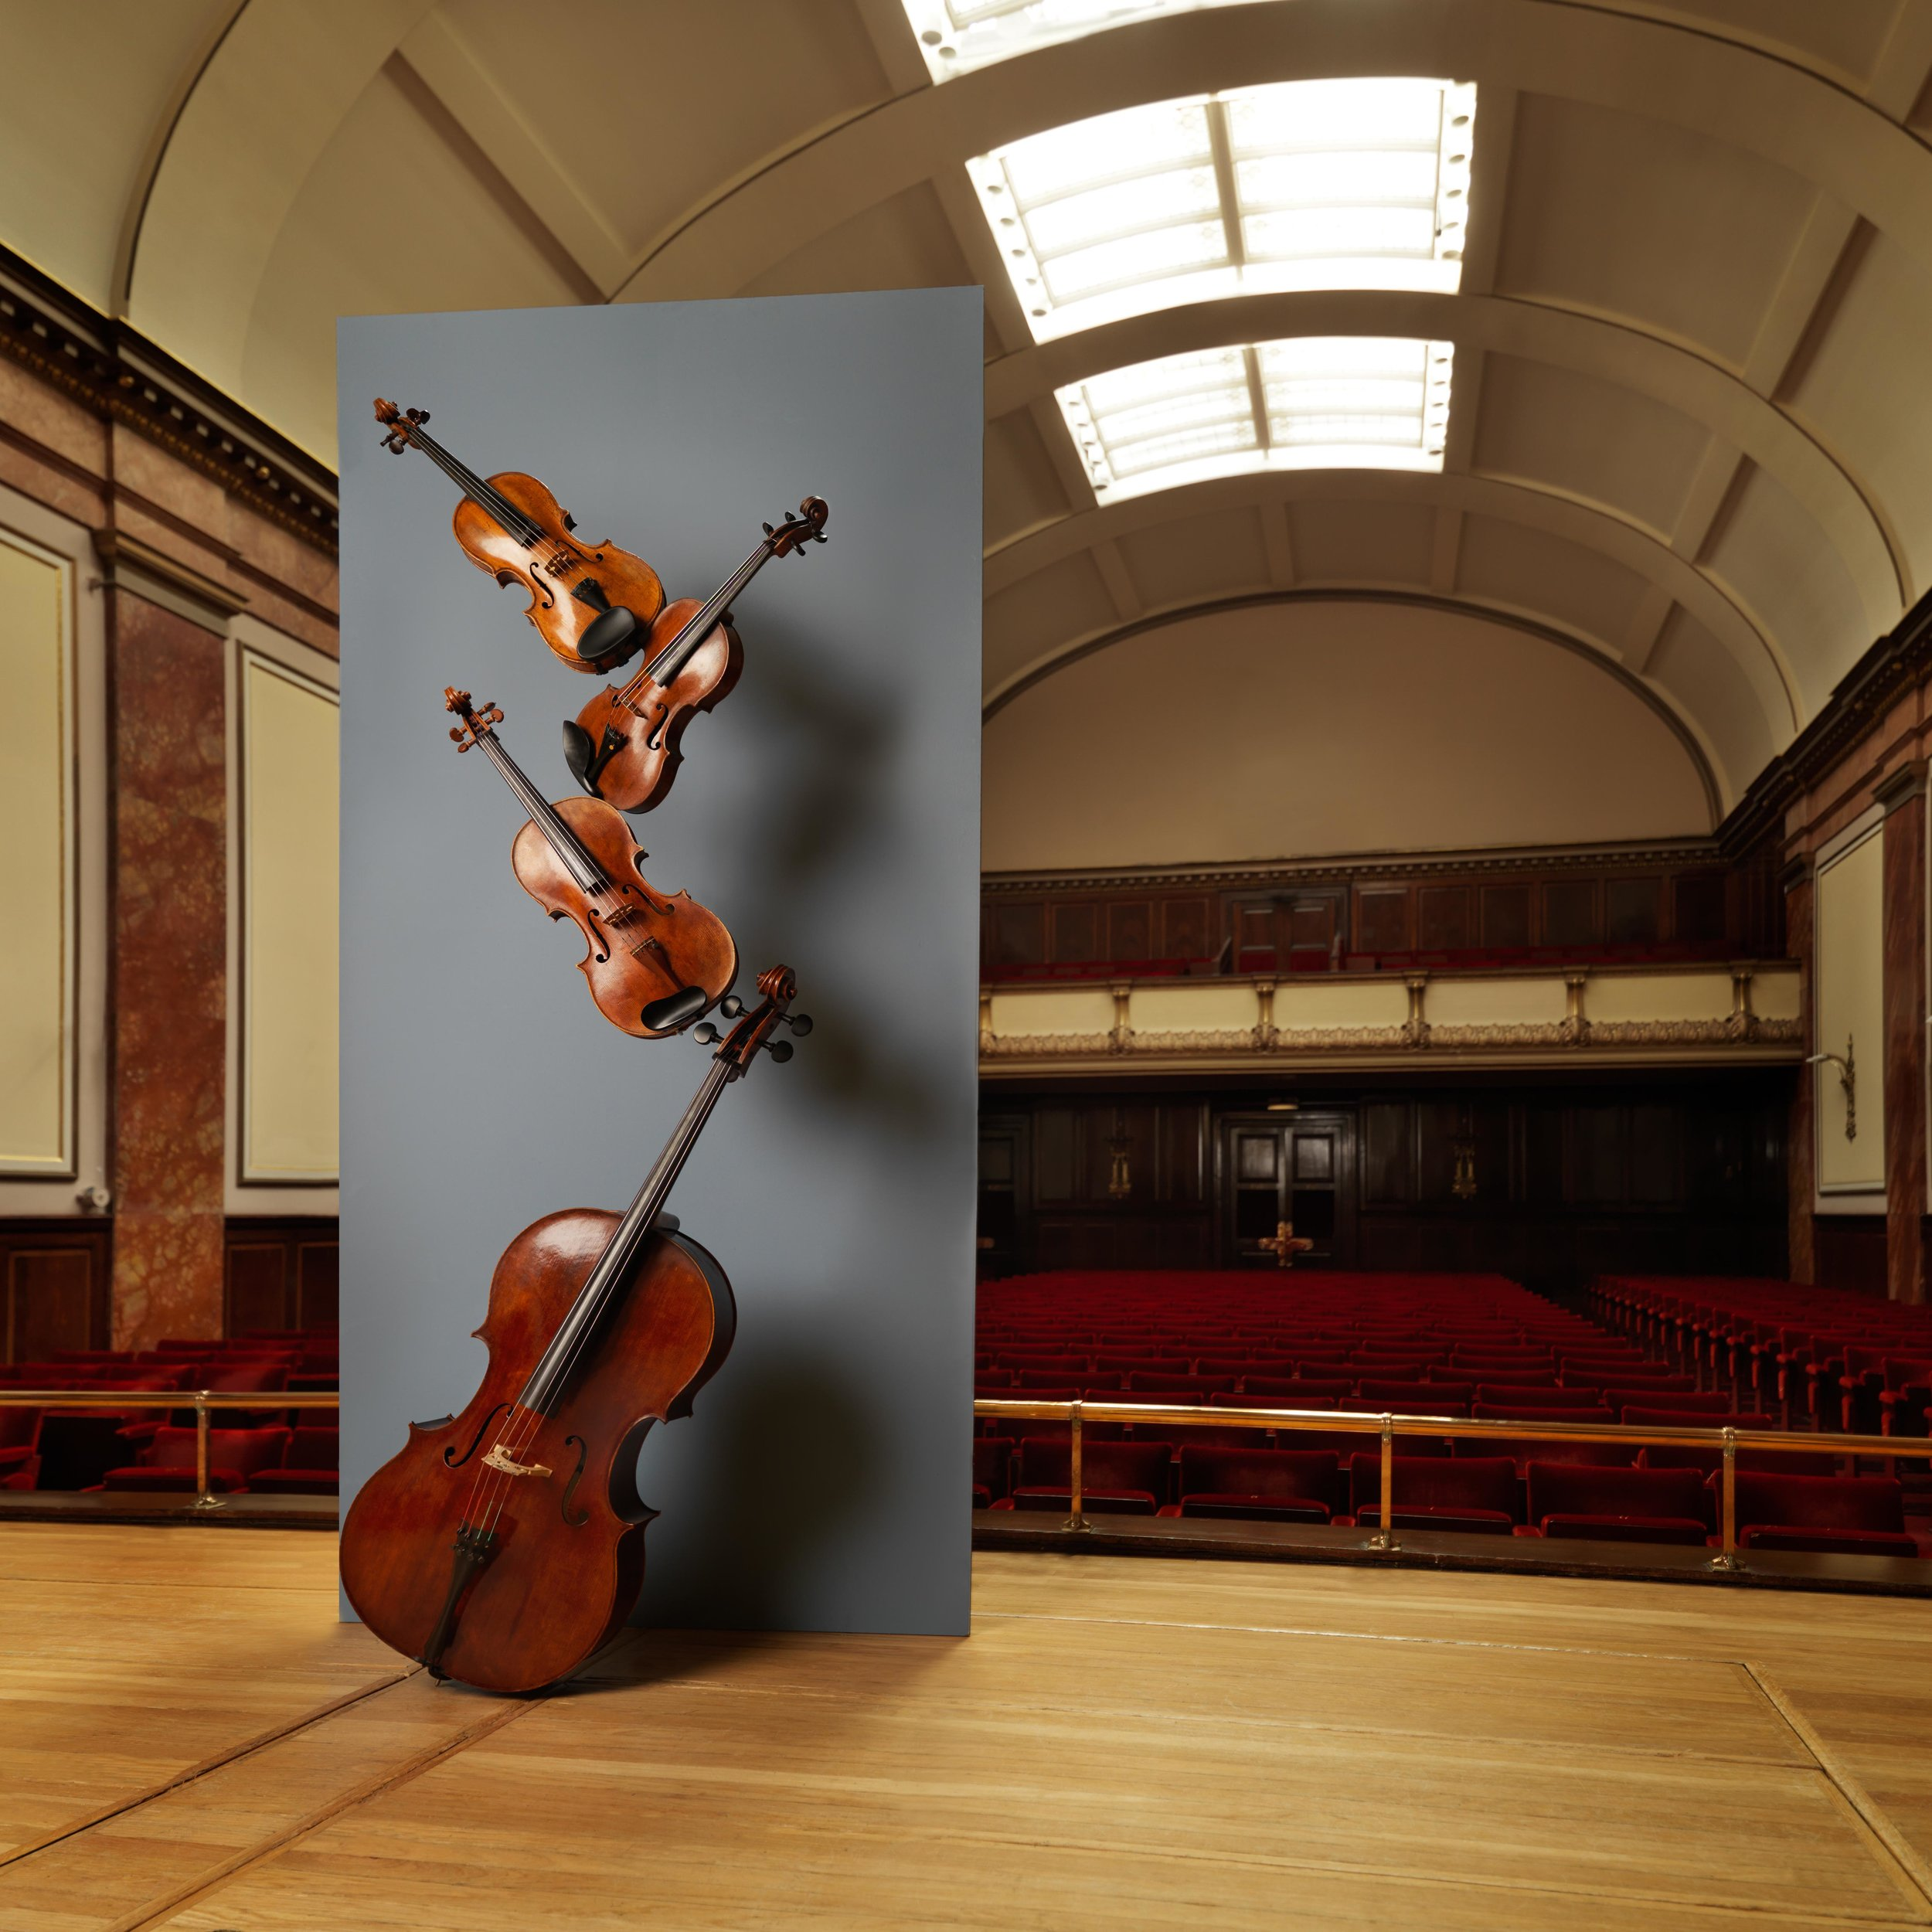 WIGMORE HALL - Creative, Film & Photography